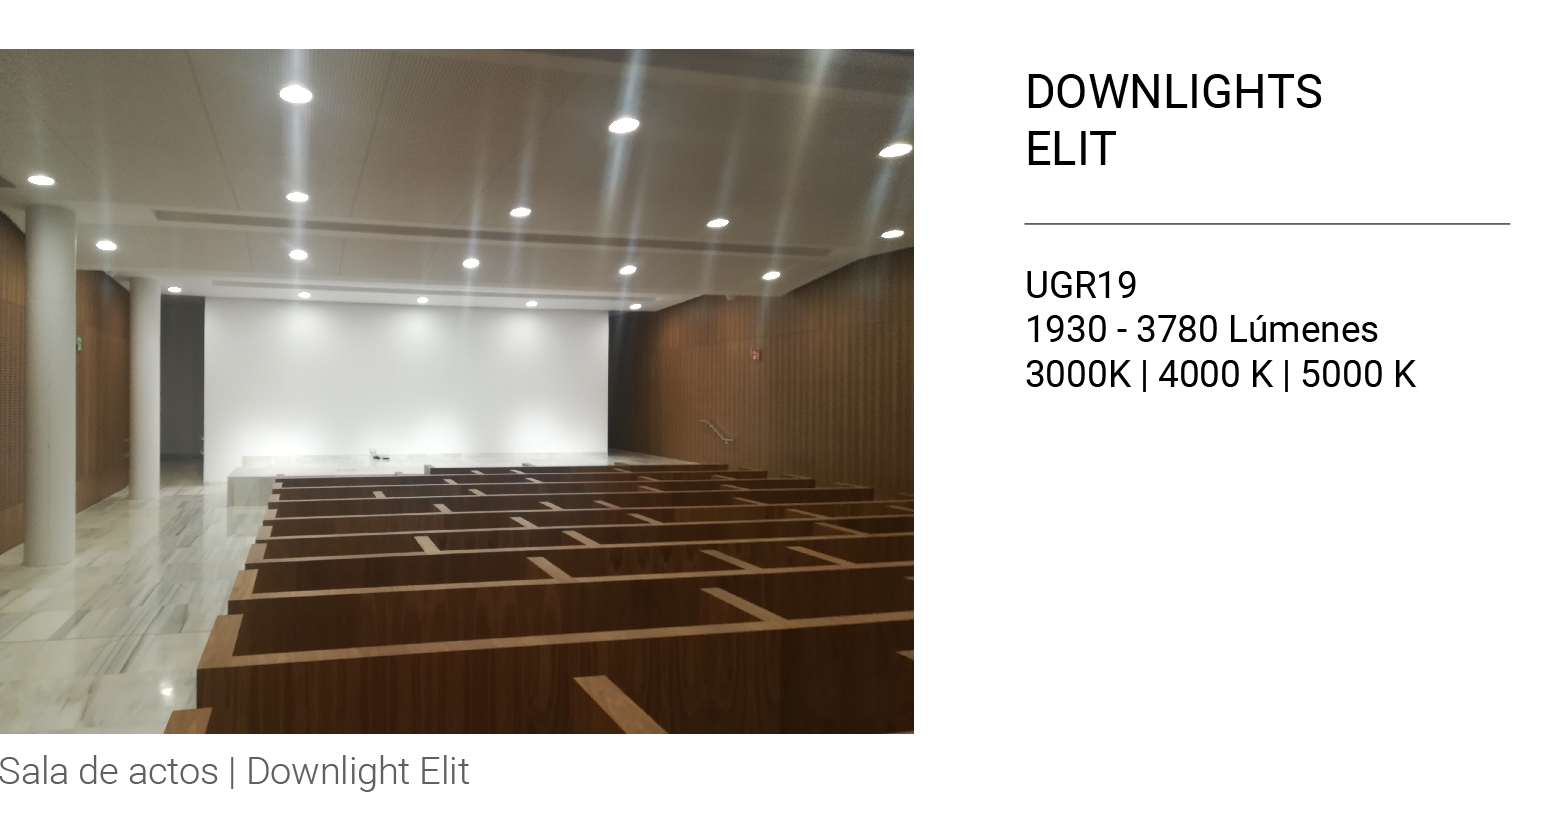 Downlight ELIT